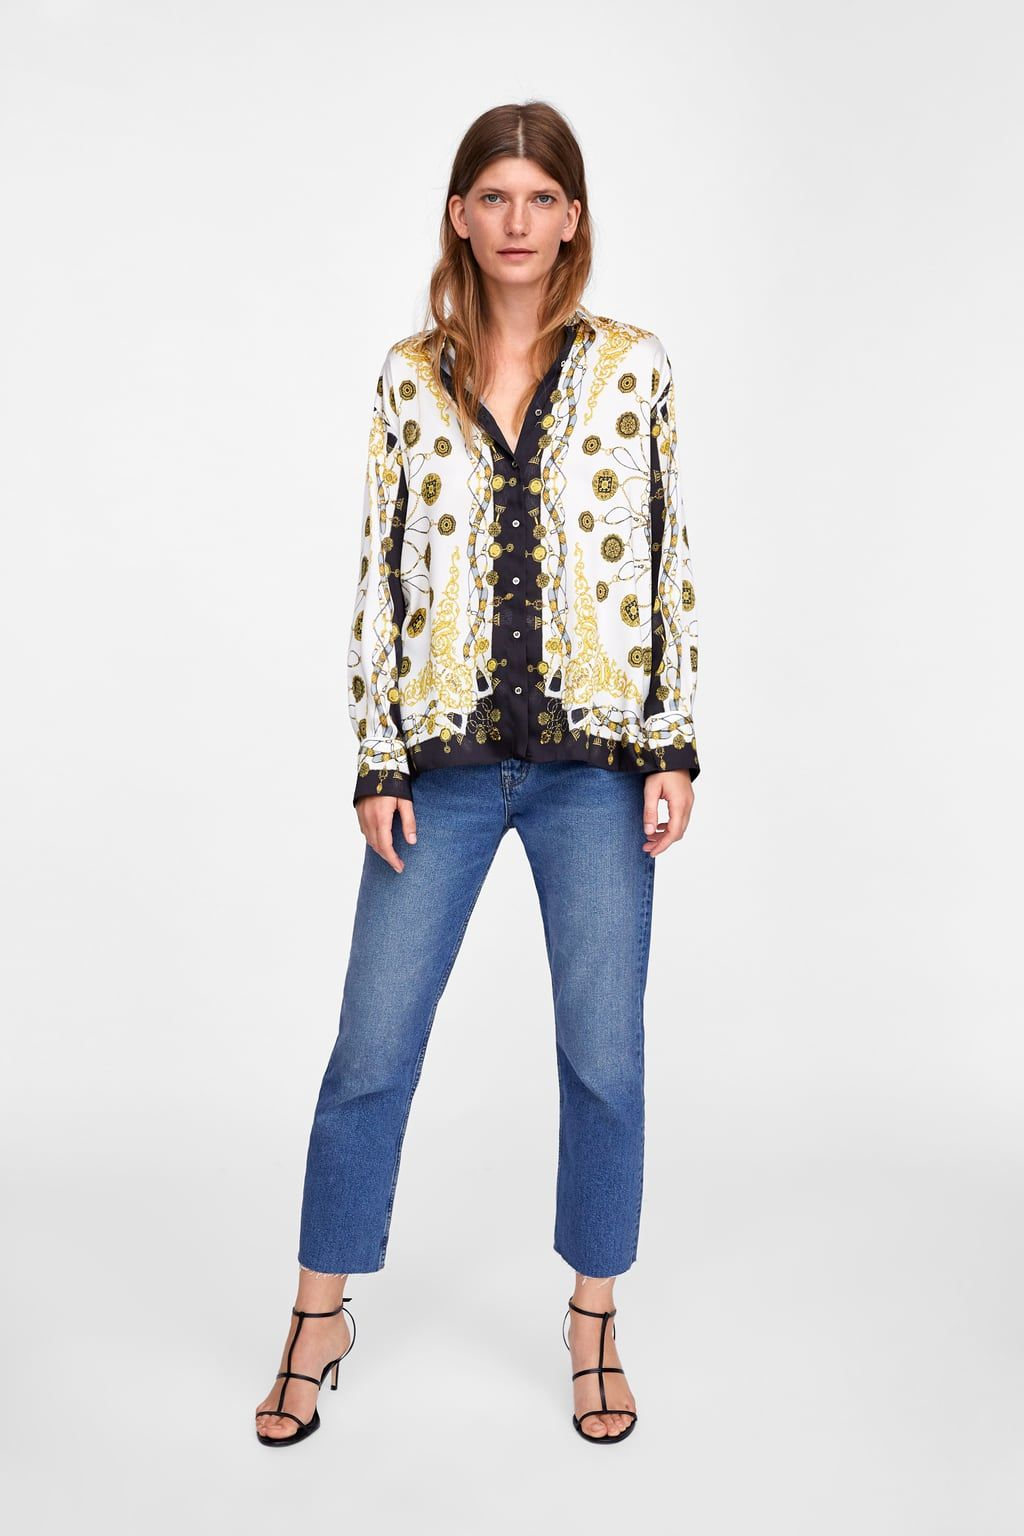 63799f95740 Image 1 of CHAIN PRINT BLOUSE from Zara